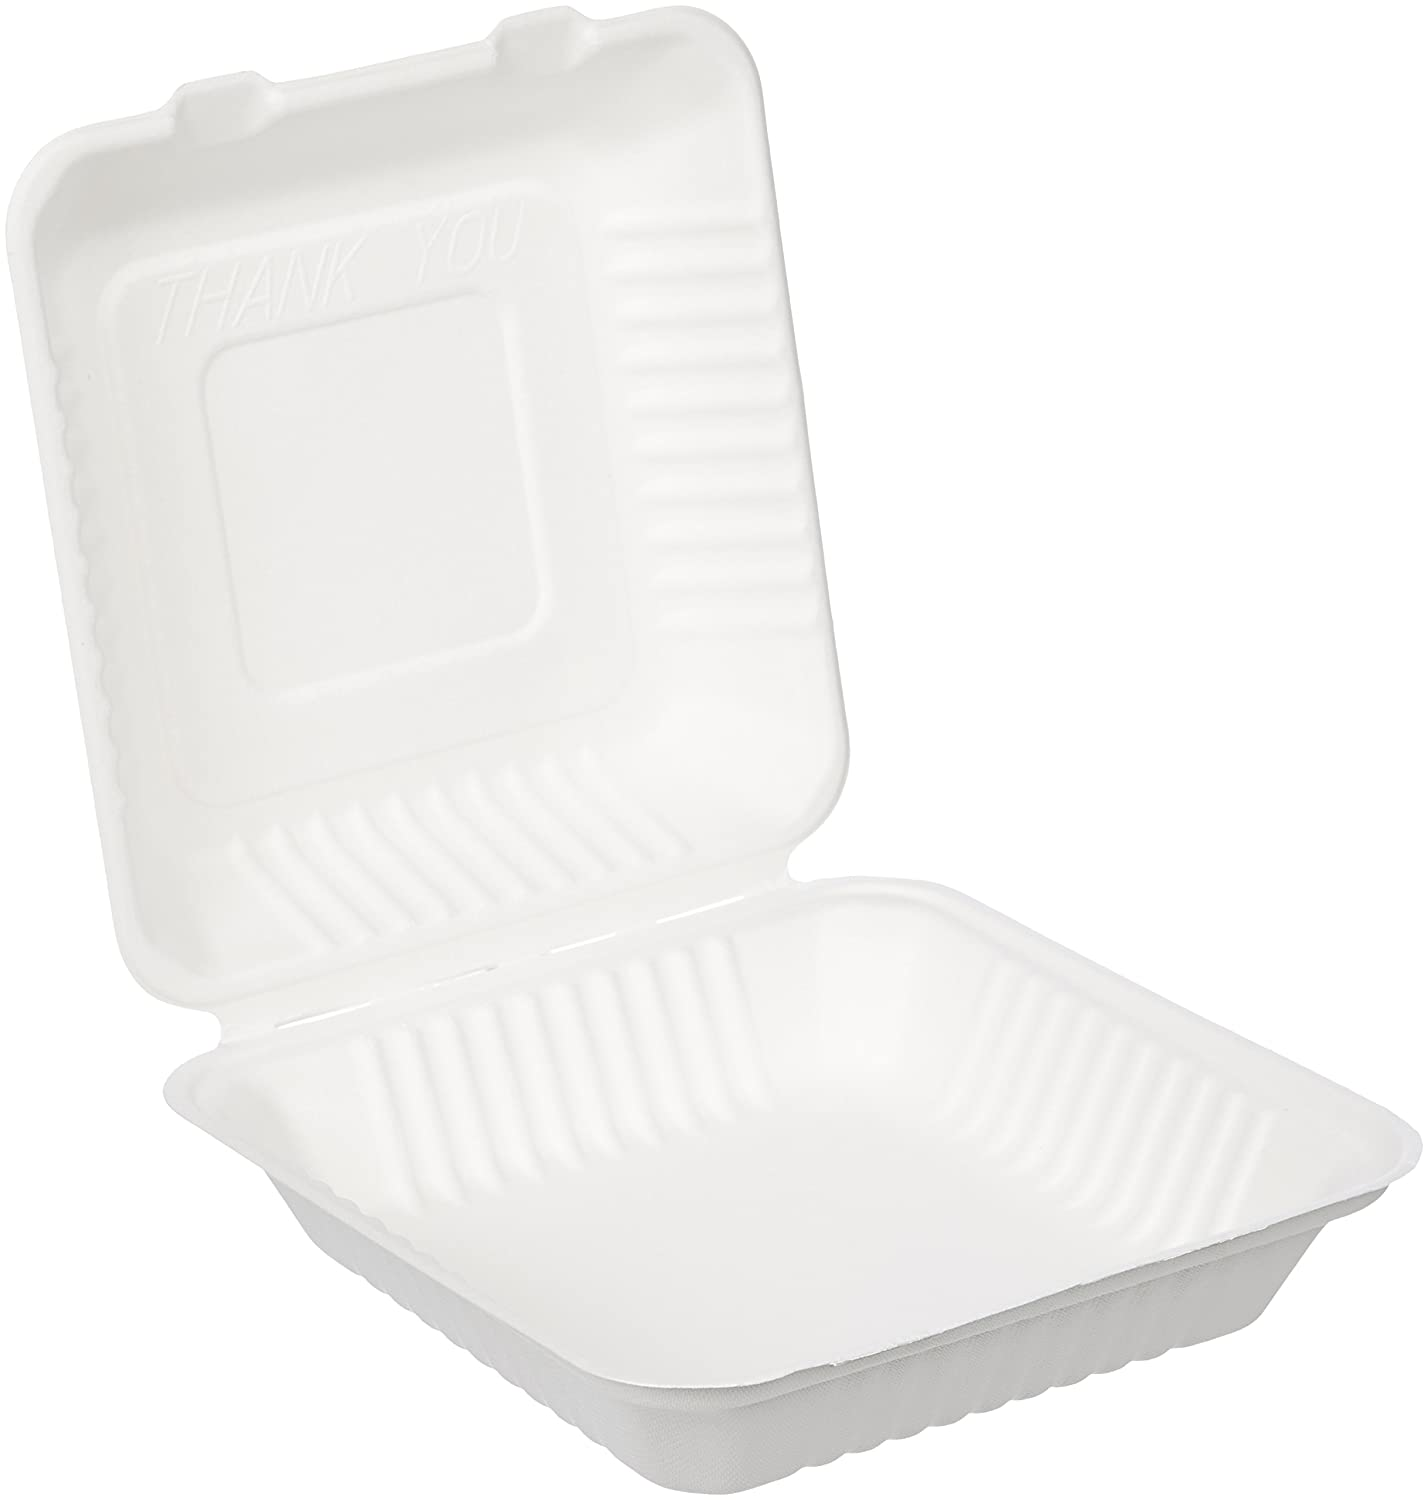 Amazon Basics Compostable Clamshell Take-Out Food Container 9